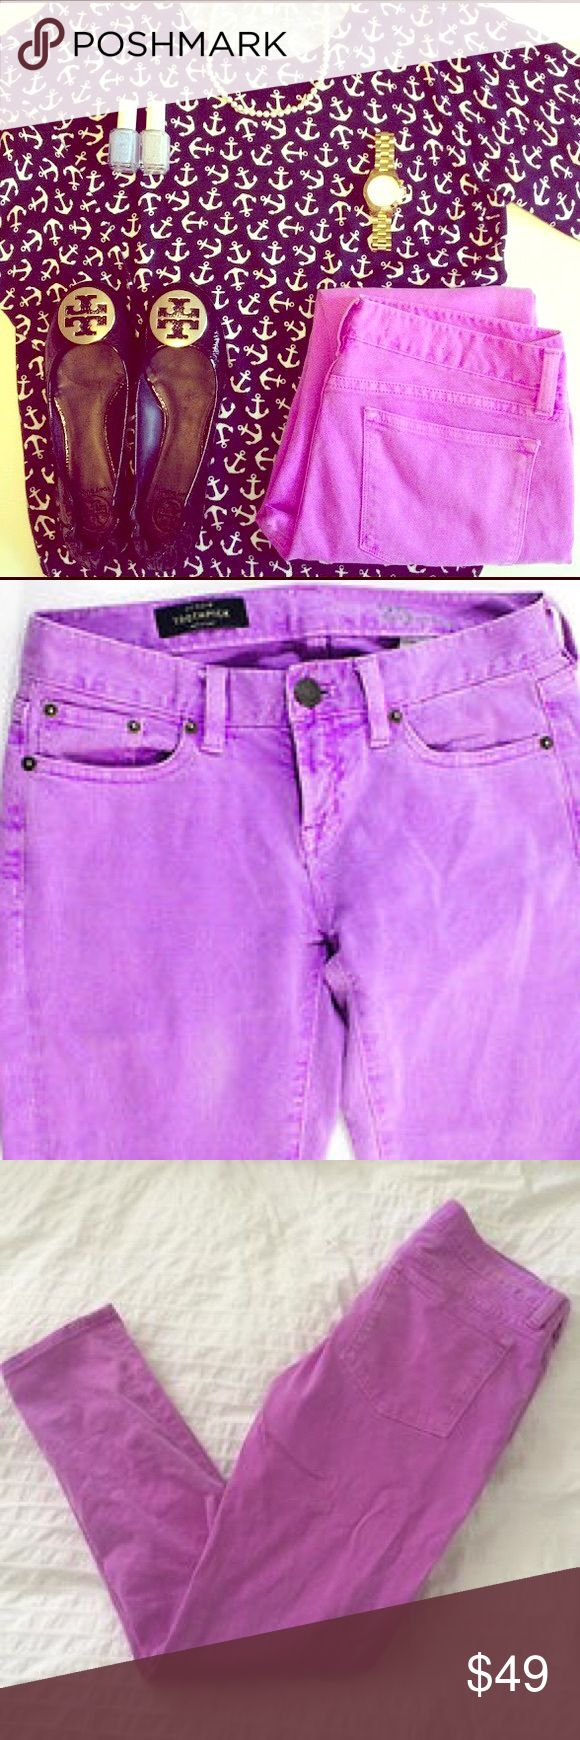 """New J. CREW Toothpick Ankle Jeans in Neon Violet NWOT, these wardrobe winners are sold out online & in stores! By J. CREW, retailing for over $125.00, the company's designers took a bright idea-& ran with it! These sz 30 talk-of-the-town toothpick skinny jeans have the perfect pop of gorgeous color, made using a high end garment dye to creates a vivid, warm shade of neon violet! Sits lower on hips. Slim through hip and thigh, with super slimming, cropped skinny 28""""inseam. Cotton/viscose with…"""